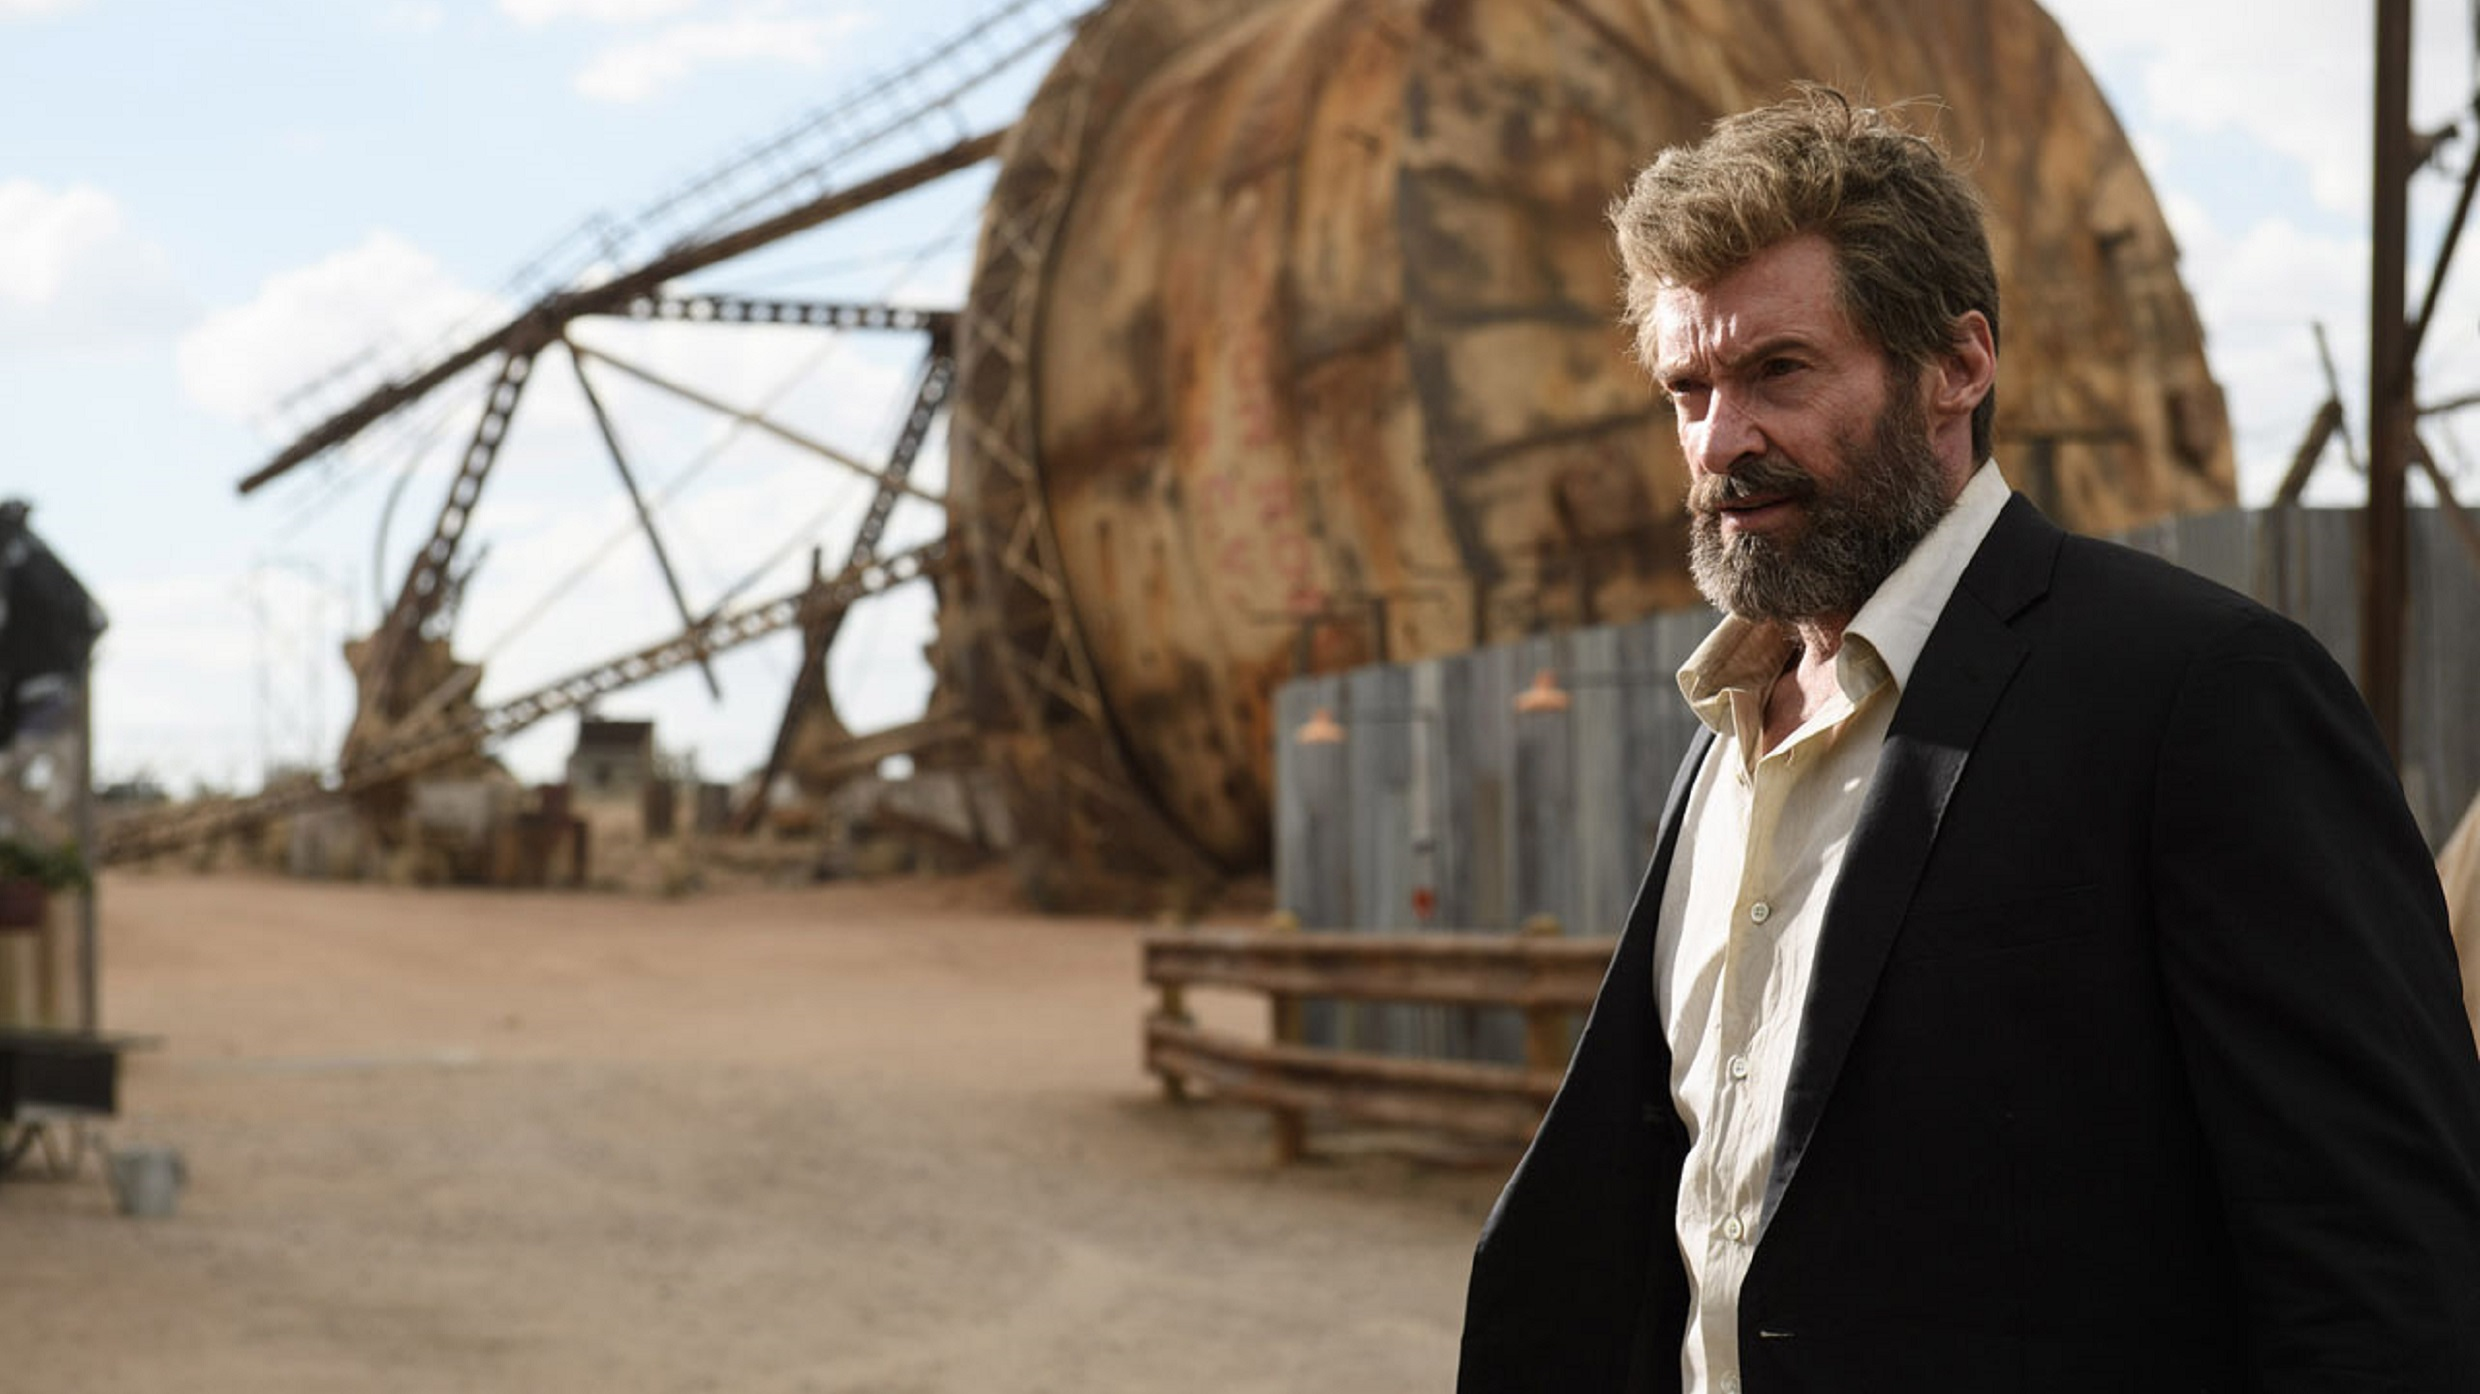 SPOILERS: Hugh Jackman talks about the ending of Logan